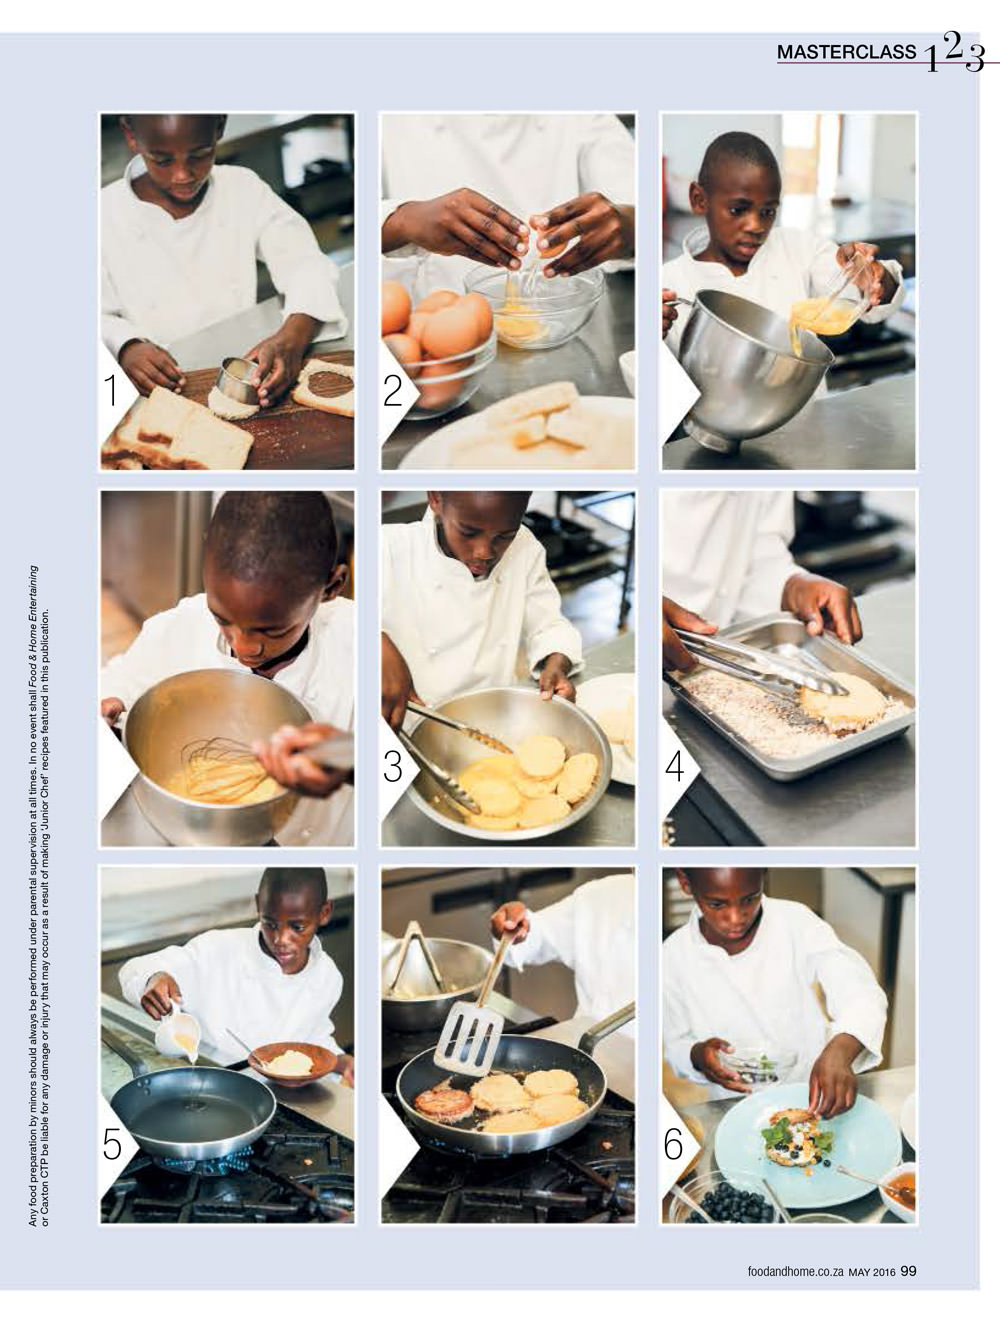 Refiloe Simpiwe Motaung Junior Chef 2